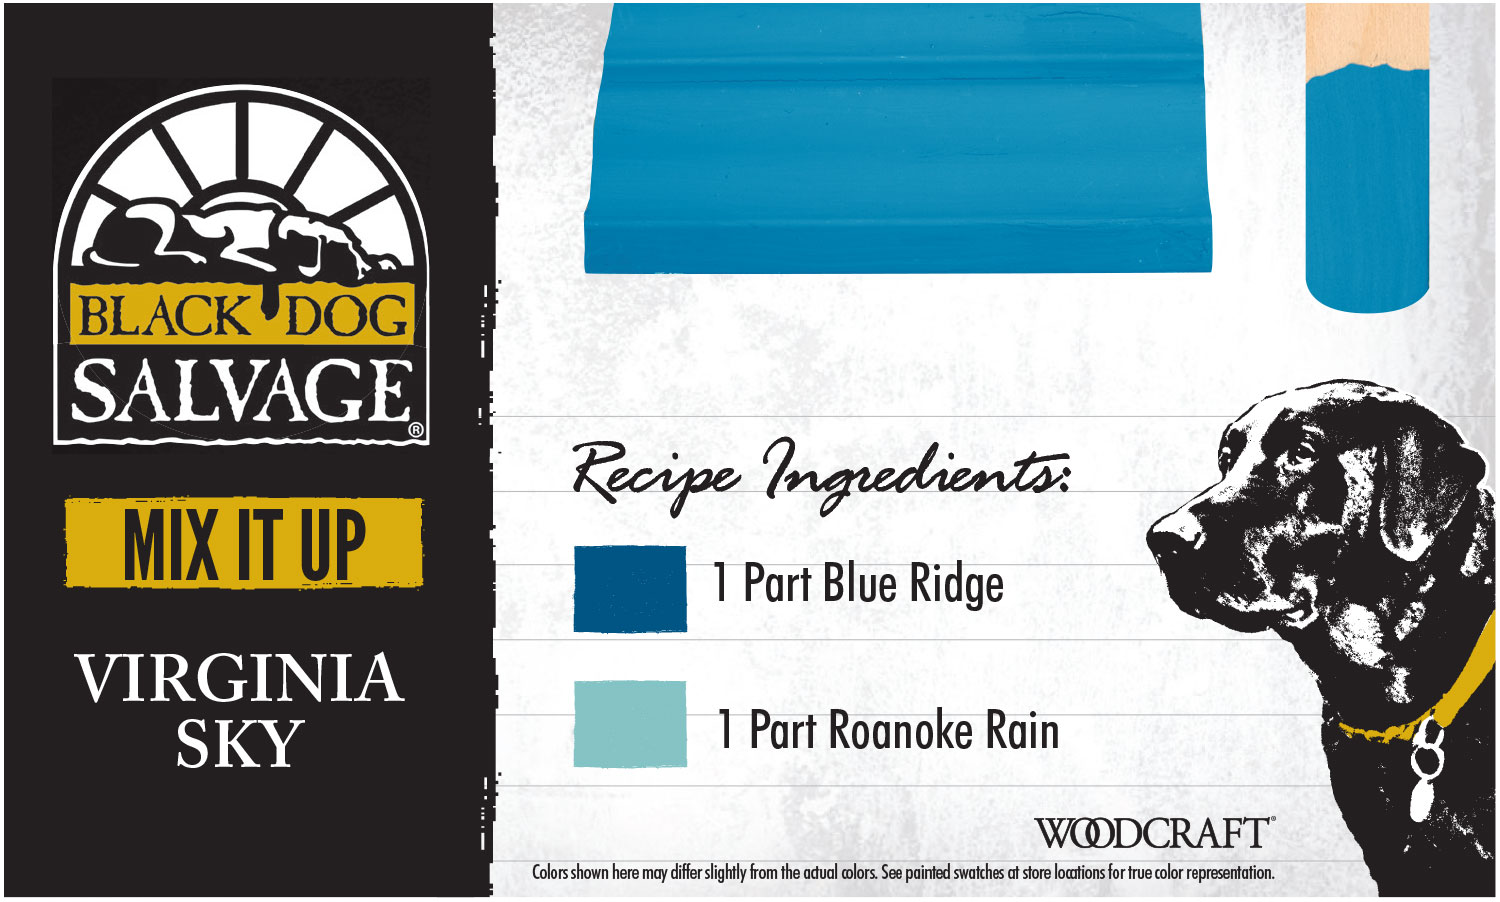 """""""Virginia Sky"""" is made from 1 Part """"Blue Ridge"""" and 1 Part """"Roanoke Rain"""""""